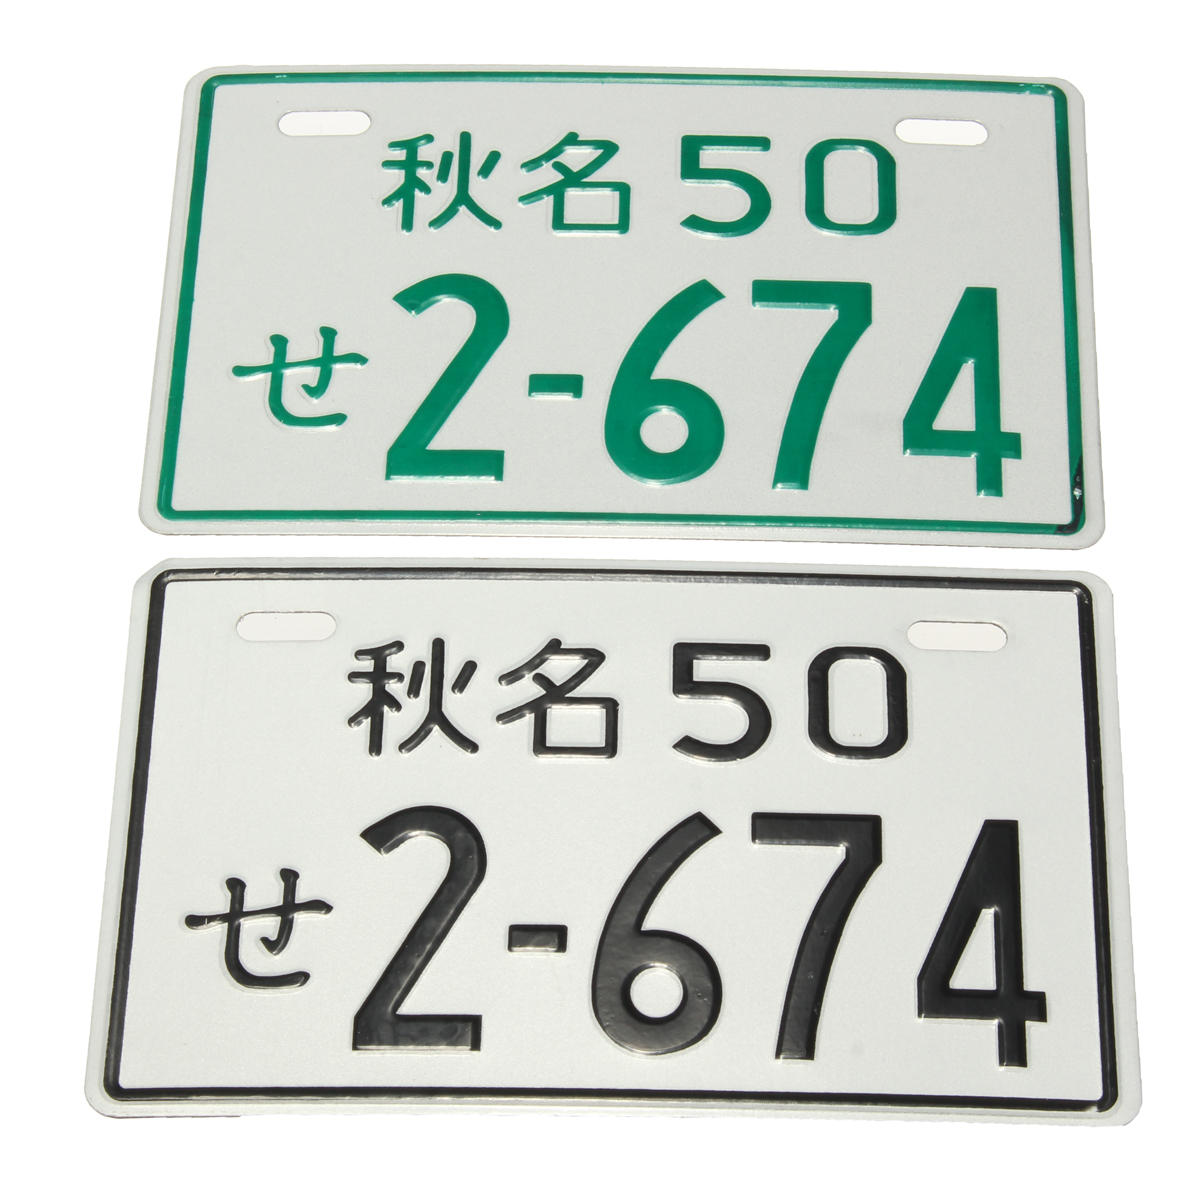 19.5x12.6cm Small Japanese Decoration License Plate Aluminum For Motorcycle Car